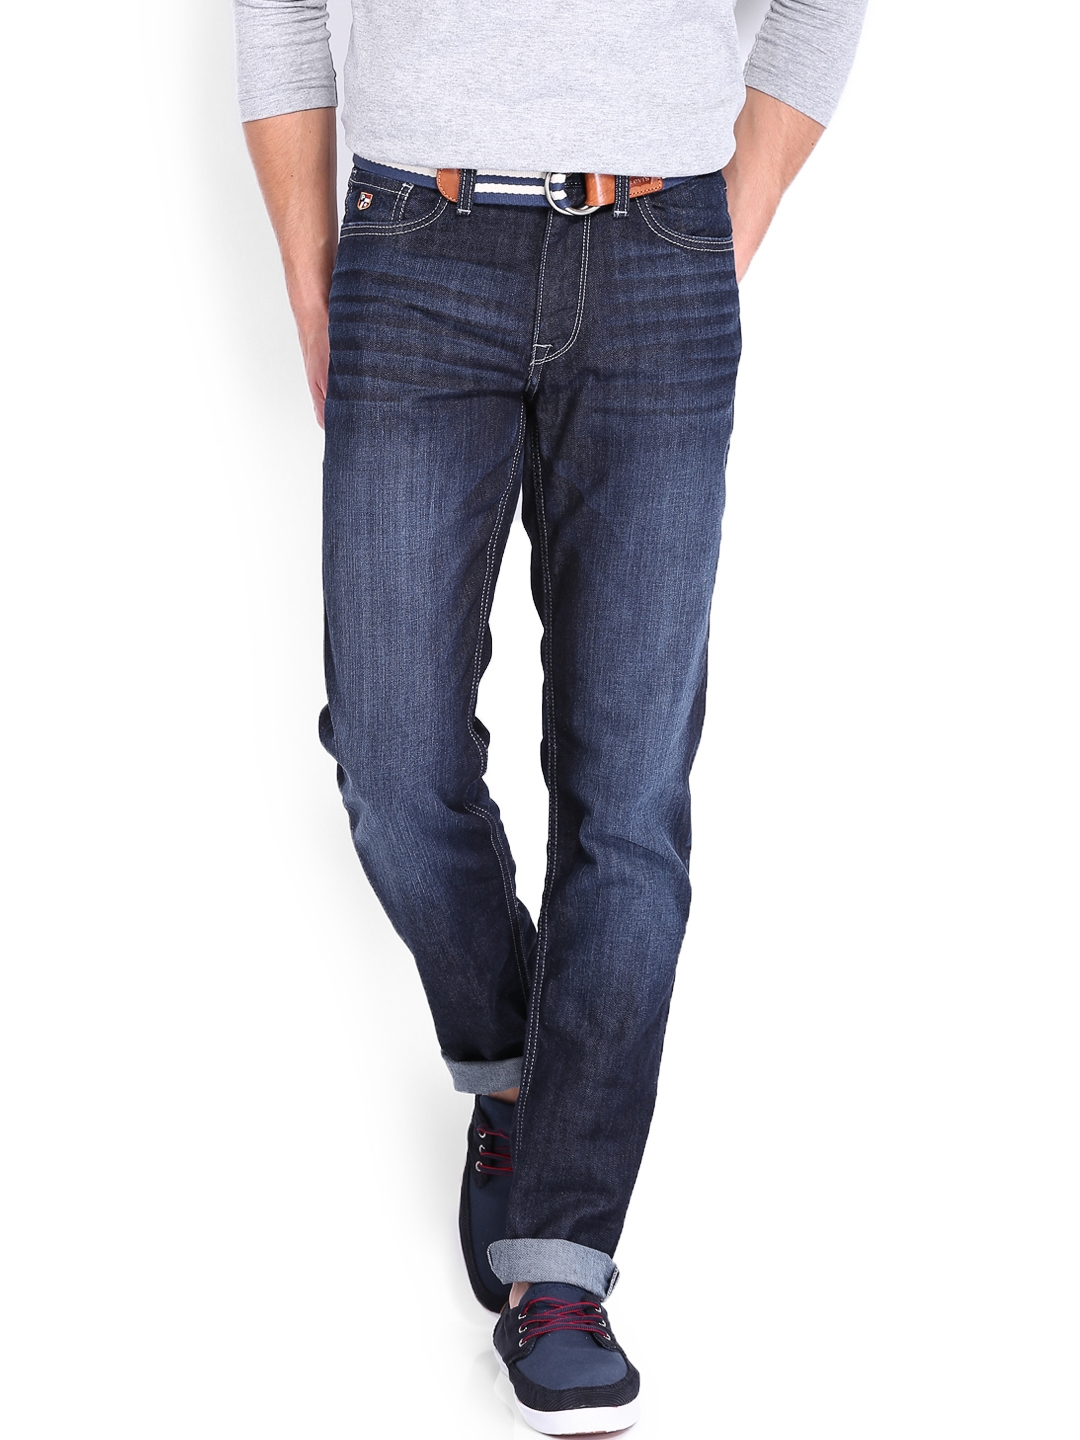 040013a3f Buy U.S. Polo Assn. Denim Co. Men Blue Slim Tapered Fit Jeans ...